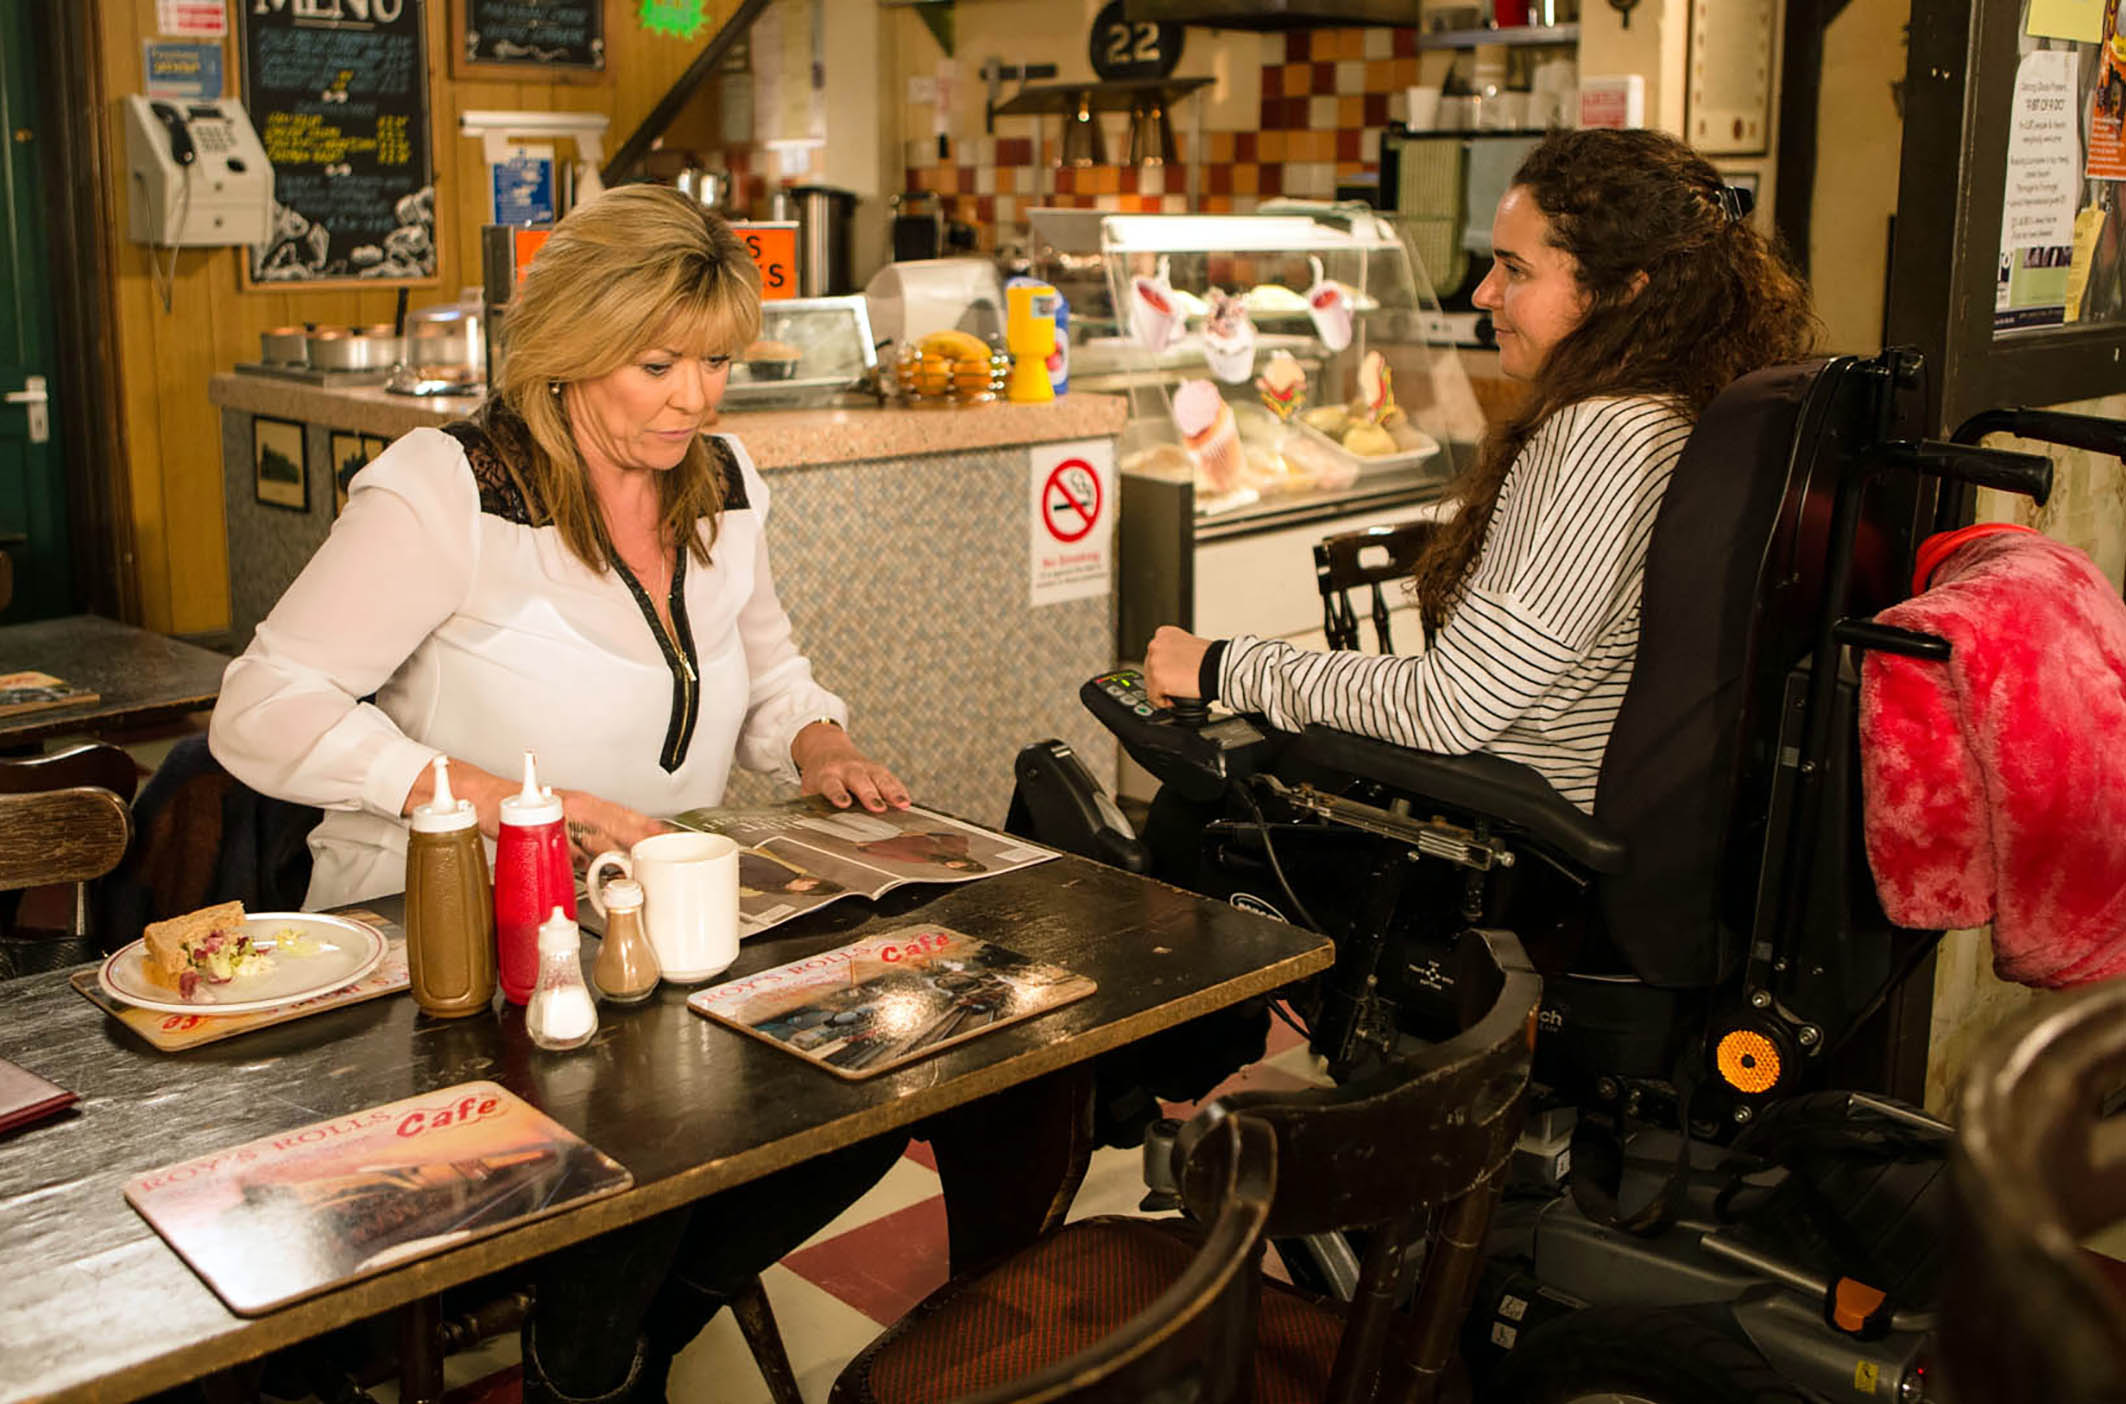 FROM ITV STRICT EMBARGO - No Use Before Tuesday 2 February 2016 Coronation Street - Ep 8837 Friday 12 February 2015 - 1st Ep Izzy Armstrong [CHERYLEE HOUSTON] confides In Erica Holroyd [CLAIRE KING] that since dislocating her hip, she's been in terrible pain and her painkillers aren't working. Erica offers to get her some cannabis but Izzy's not keen. Picture contact: david.crook@itv.com on 0161 952 6214 Photographer - Mark Bruce This photograph is (C) ITV Plc and can only be reproduced for editorial purposes directly in connection with the programme or event mentioned above, or ITV plc. Once made available by ITV plc Picture Desk, this photograph can be reproduced once only up until the transmission [TX] date and no reproduction fee will be charged. Any subsequent usage may incur a fee. This photograph must not be manipulated [excluding basic cropping] in a manner which alters the visual appearance of the person photographed deemed detrimental or inappropriate by ITV plc Picture Desk. This photograph must not be syndicated to any other company, publication or website, or permanently archived, without the express written permission of ITV Plc Picture Desk. Full Terms and conditions are available on the website www.itvpictures.com